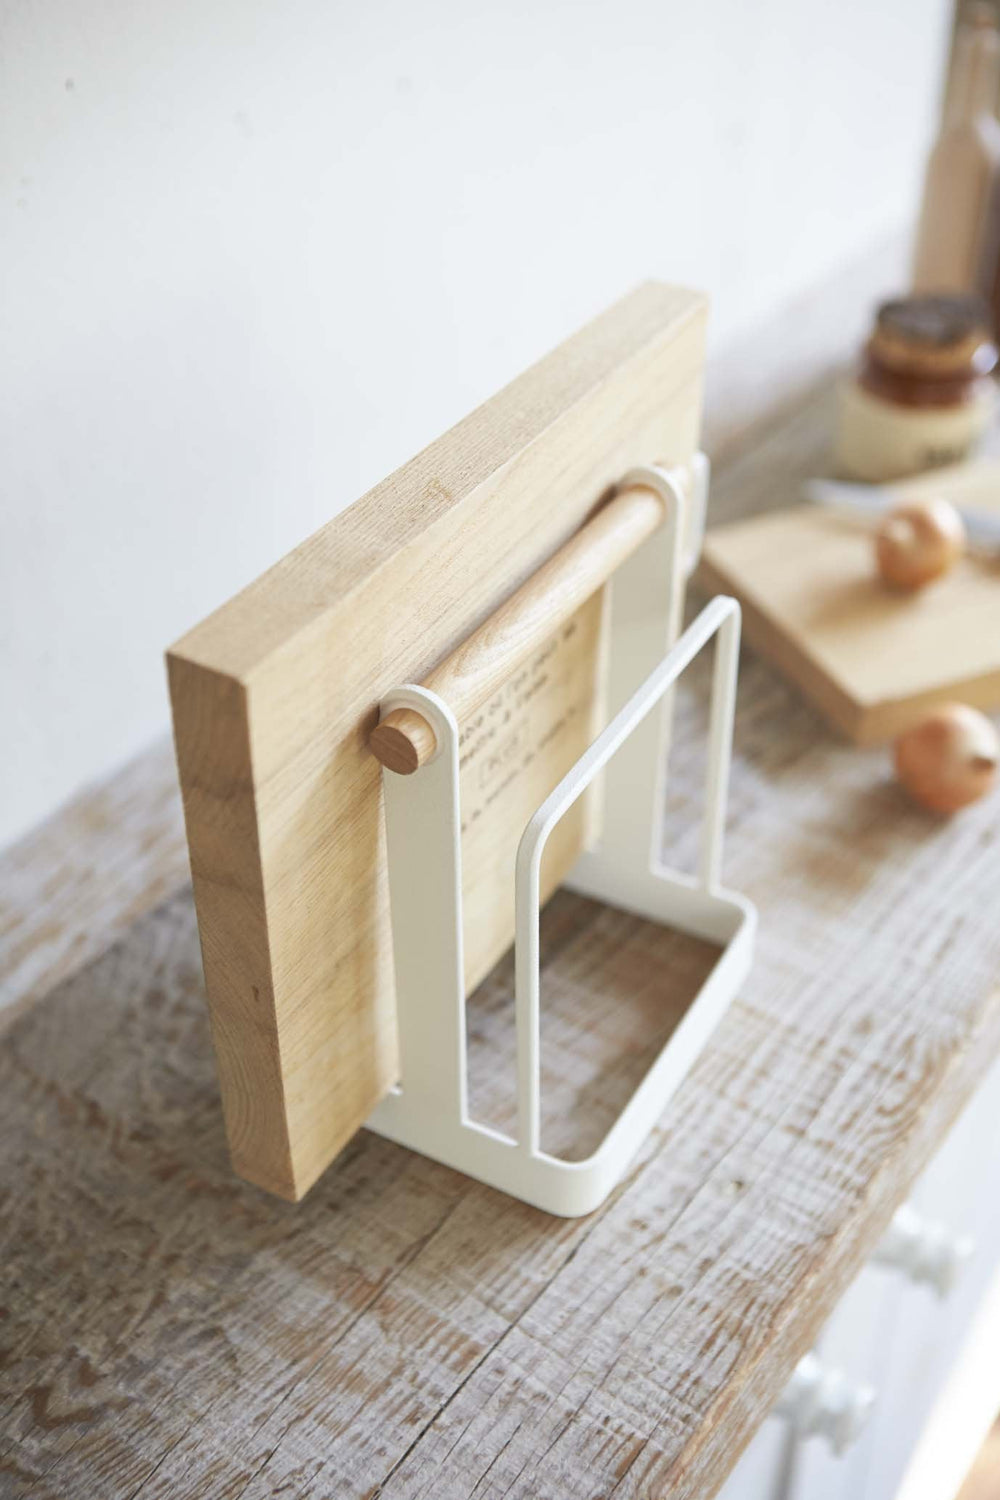 Angled view of Yamazaki Cutting Board Stand on countertop, holding a wooden cutting board